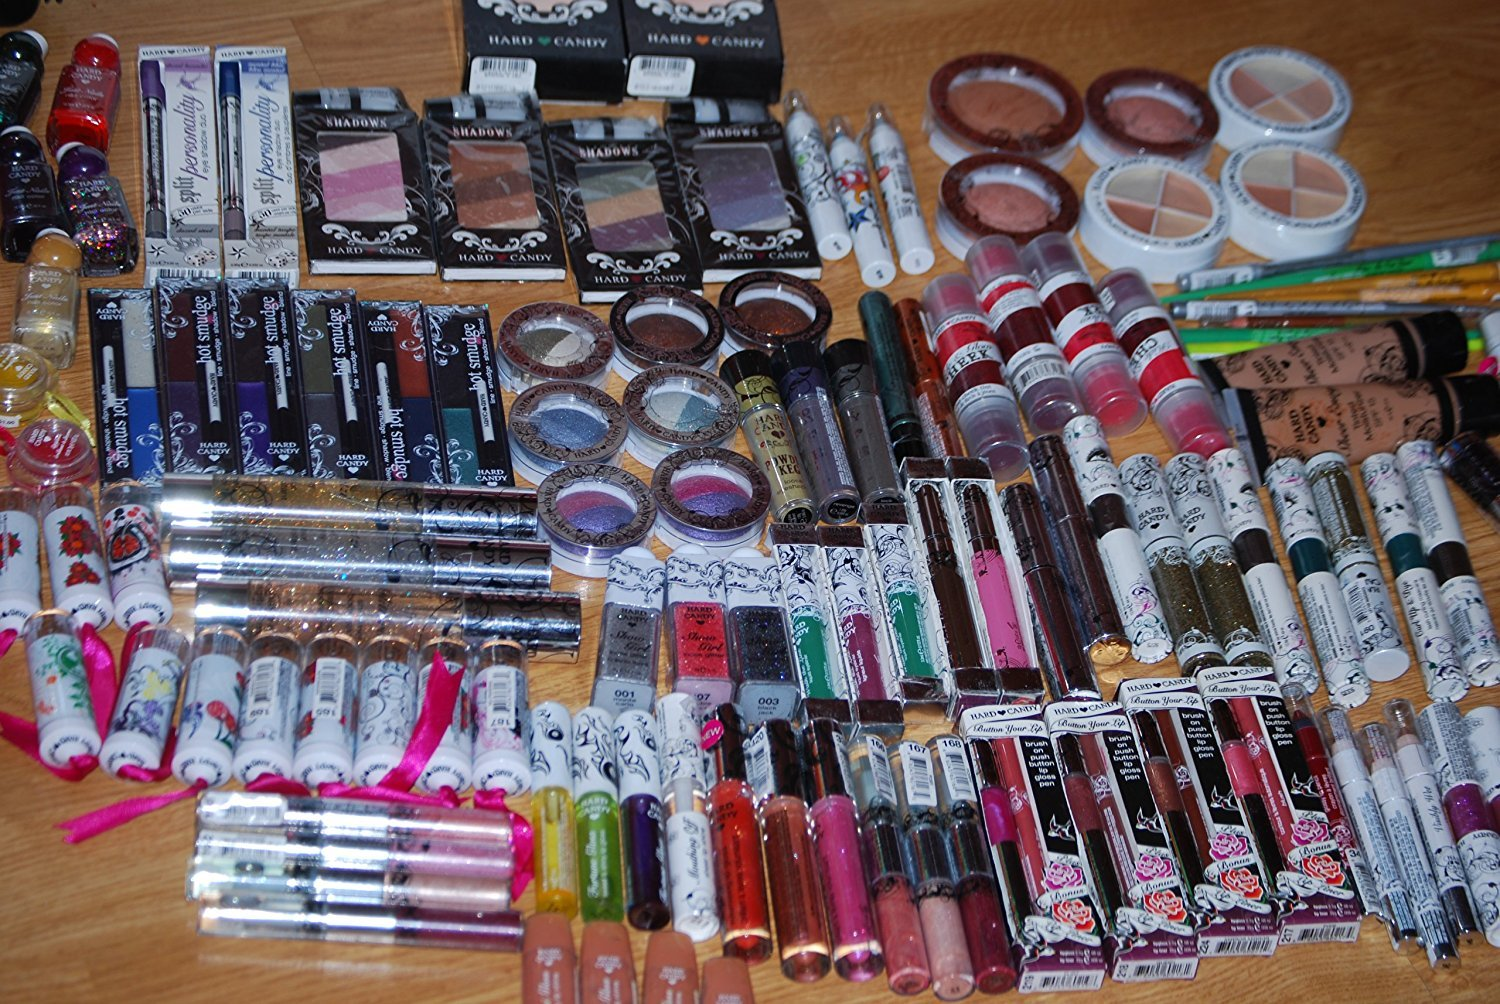 25 Piece Brand New & Sealed Hard Candy'' Cosmetics Makeup Excellent Assorted Mixed Lot with No Duplicates